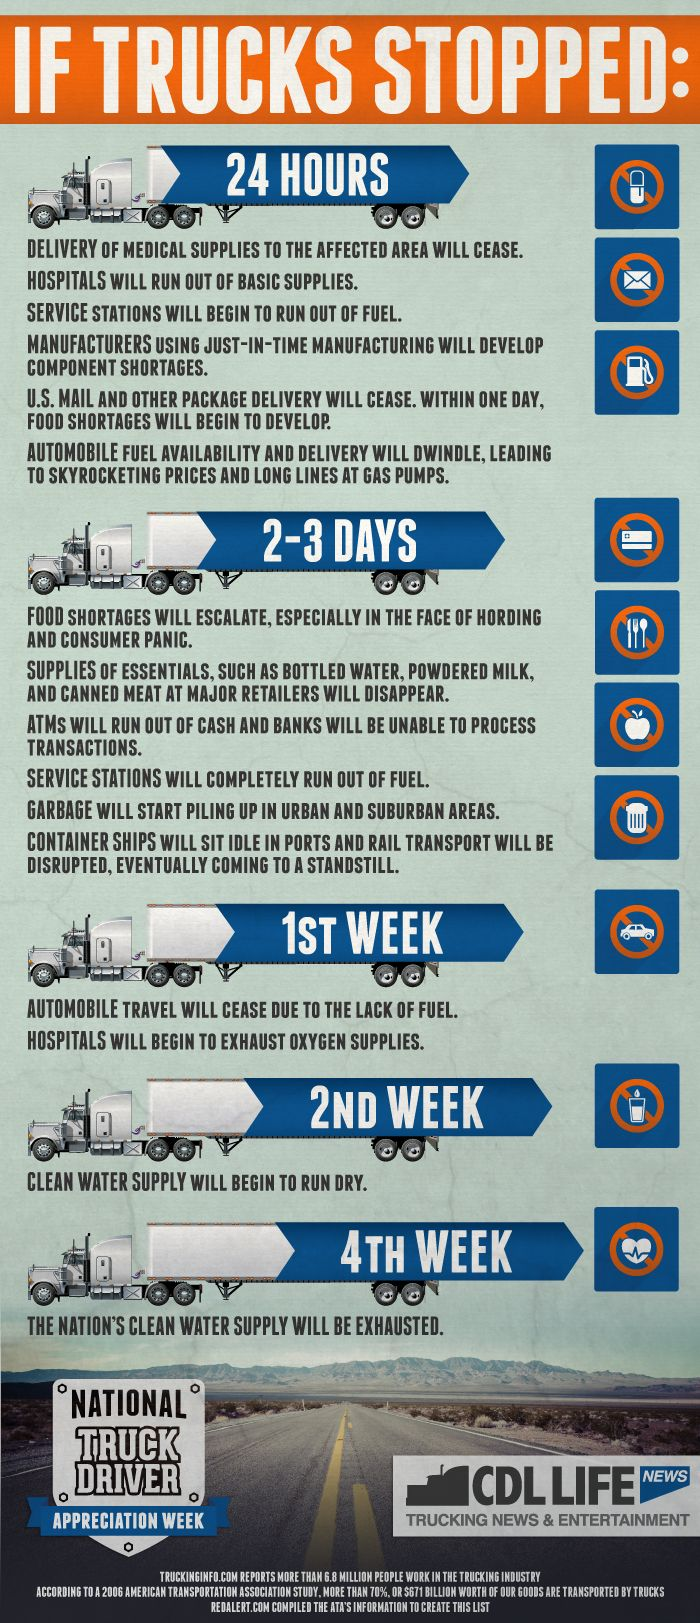 [Infographic] If trucks stopped transporting goods, this would happen #semitrucks